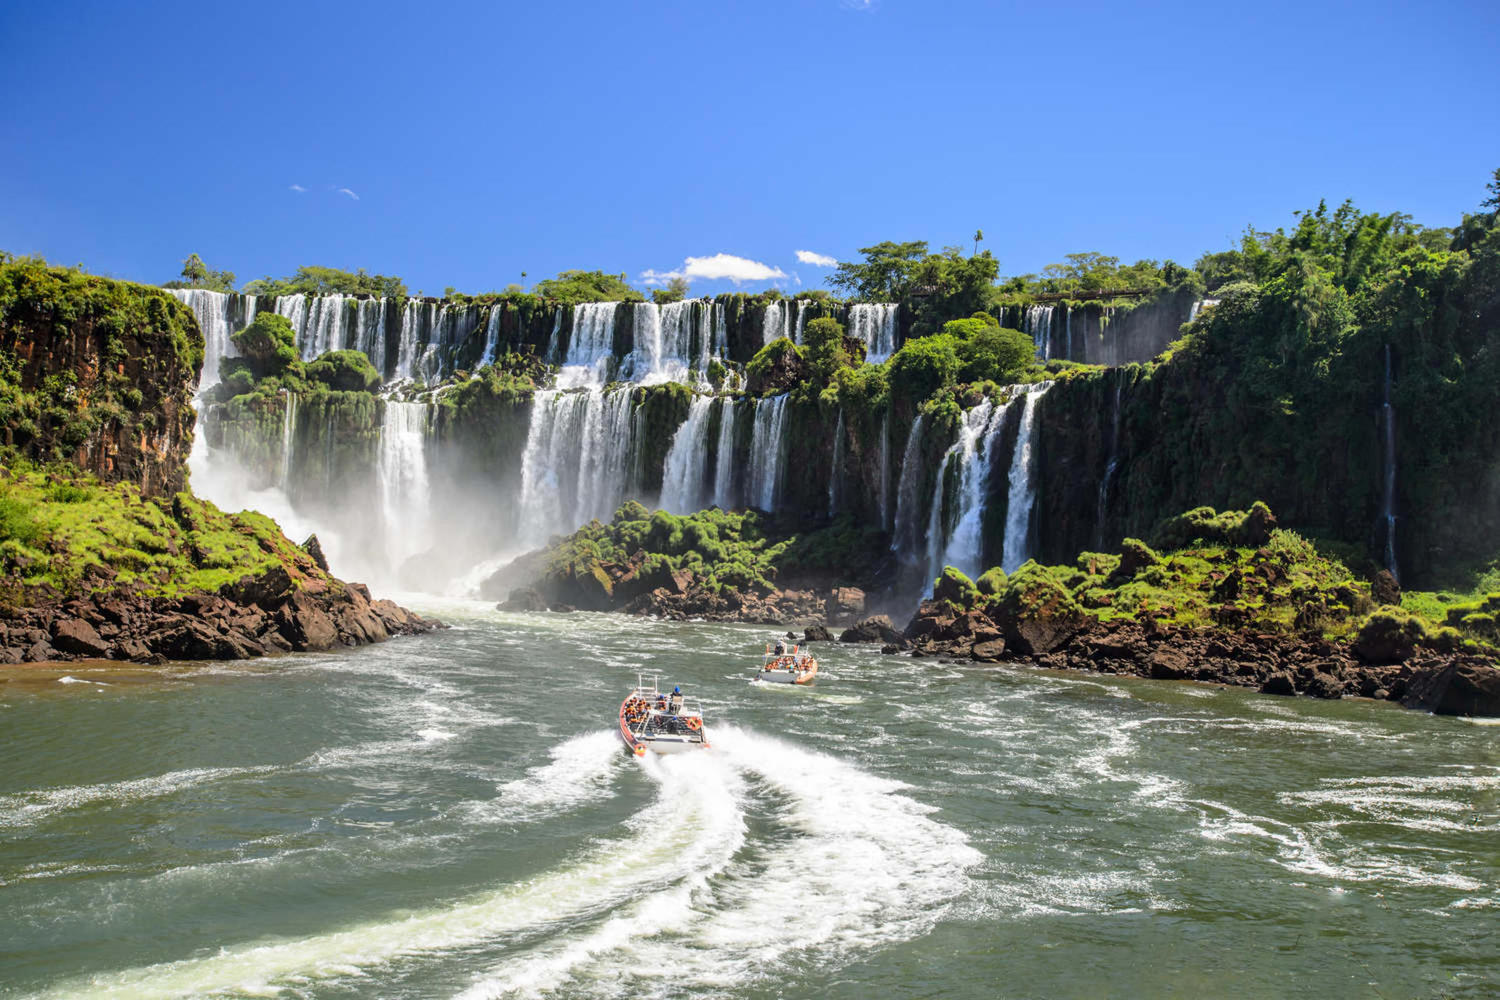 Beautiful view of Iguassu falls